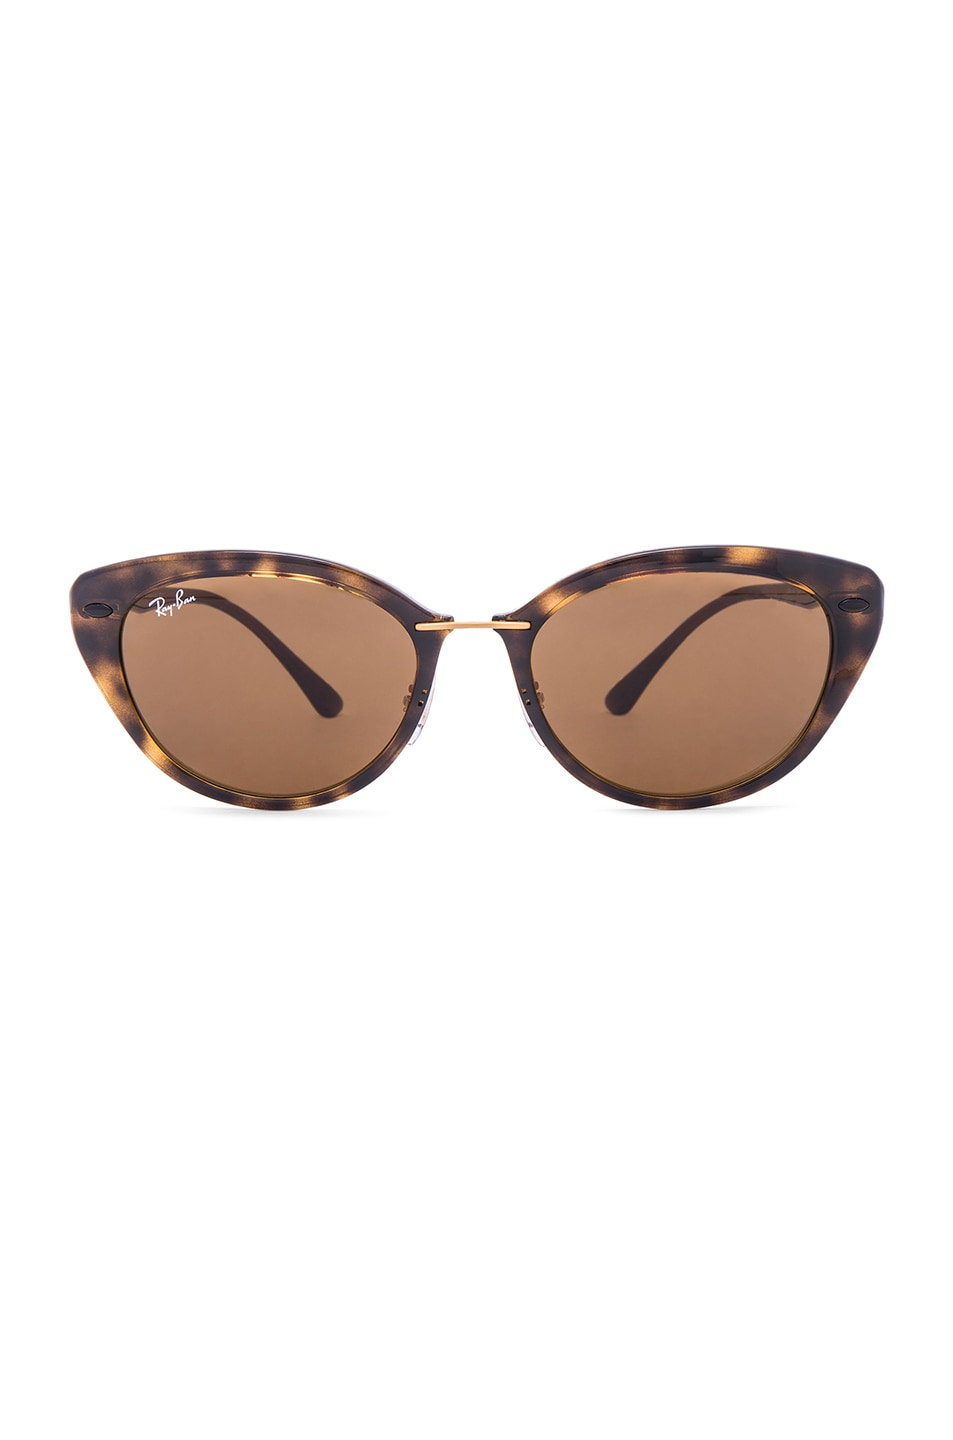 6f938888193 Image 1 of Ray-Ban Cat Eye Sunglasses in Brown Tortoise